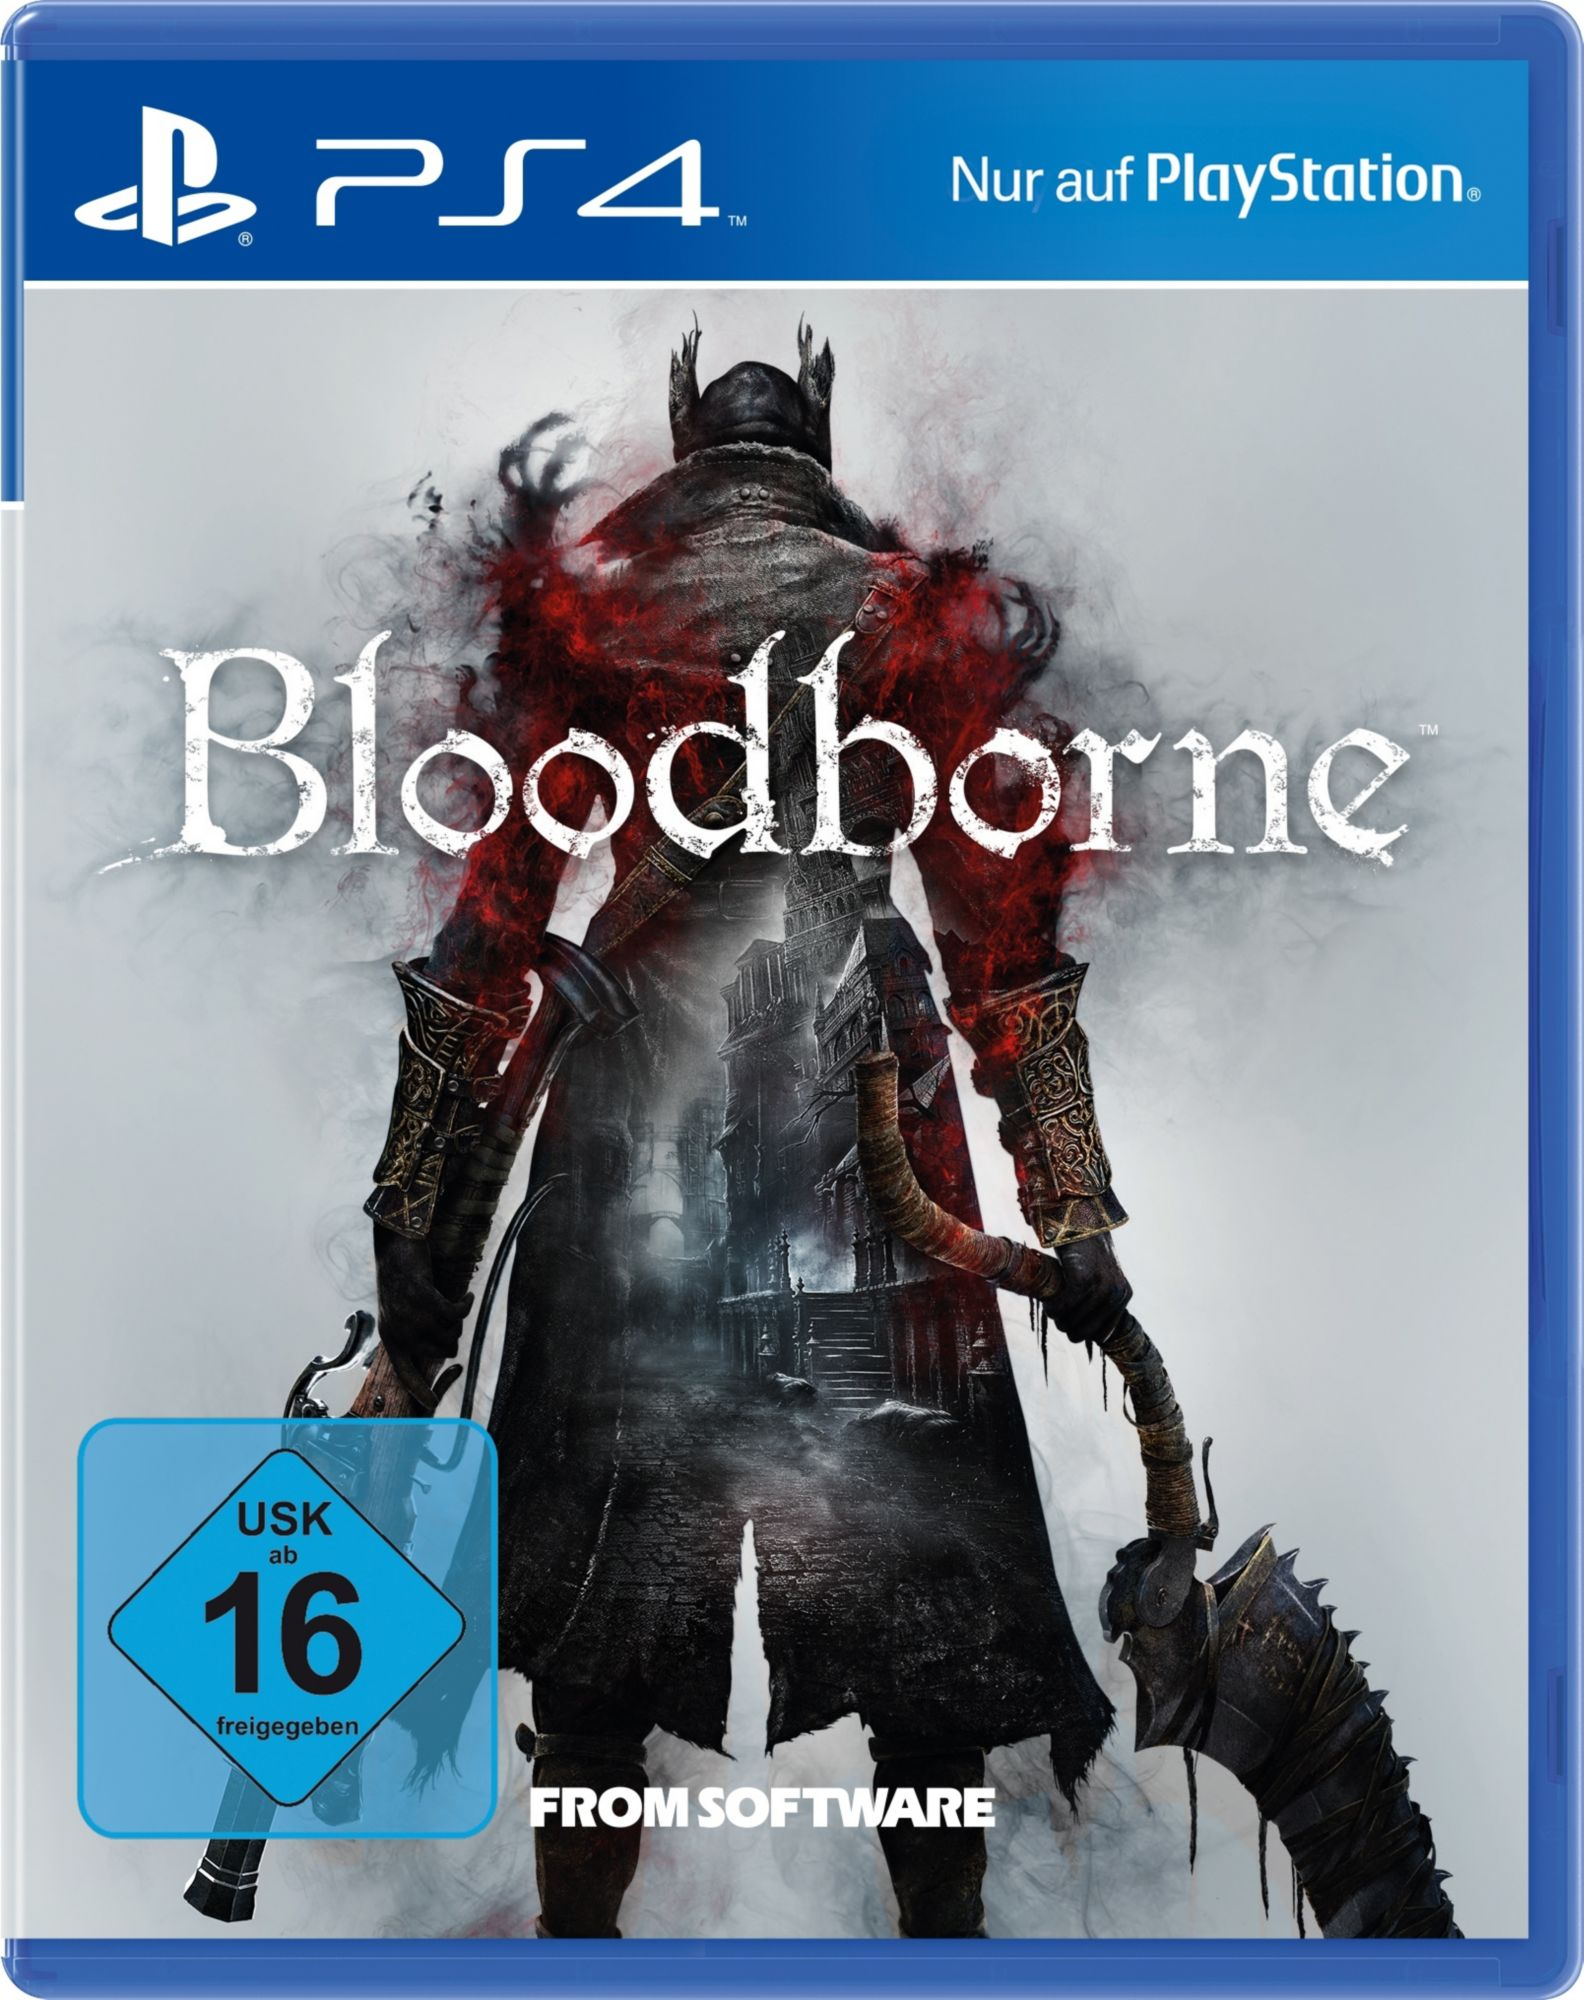 PS4 Bloodborne PlayStation 4